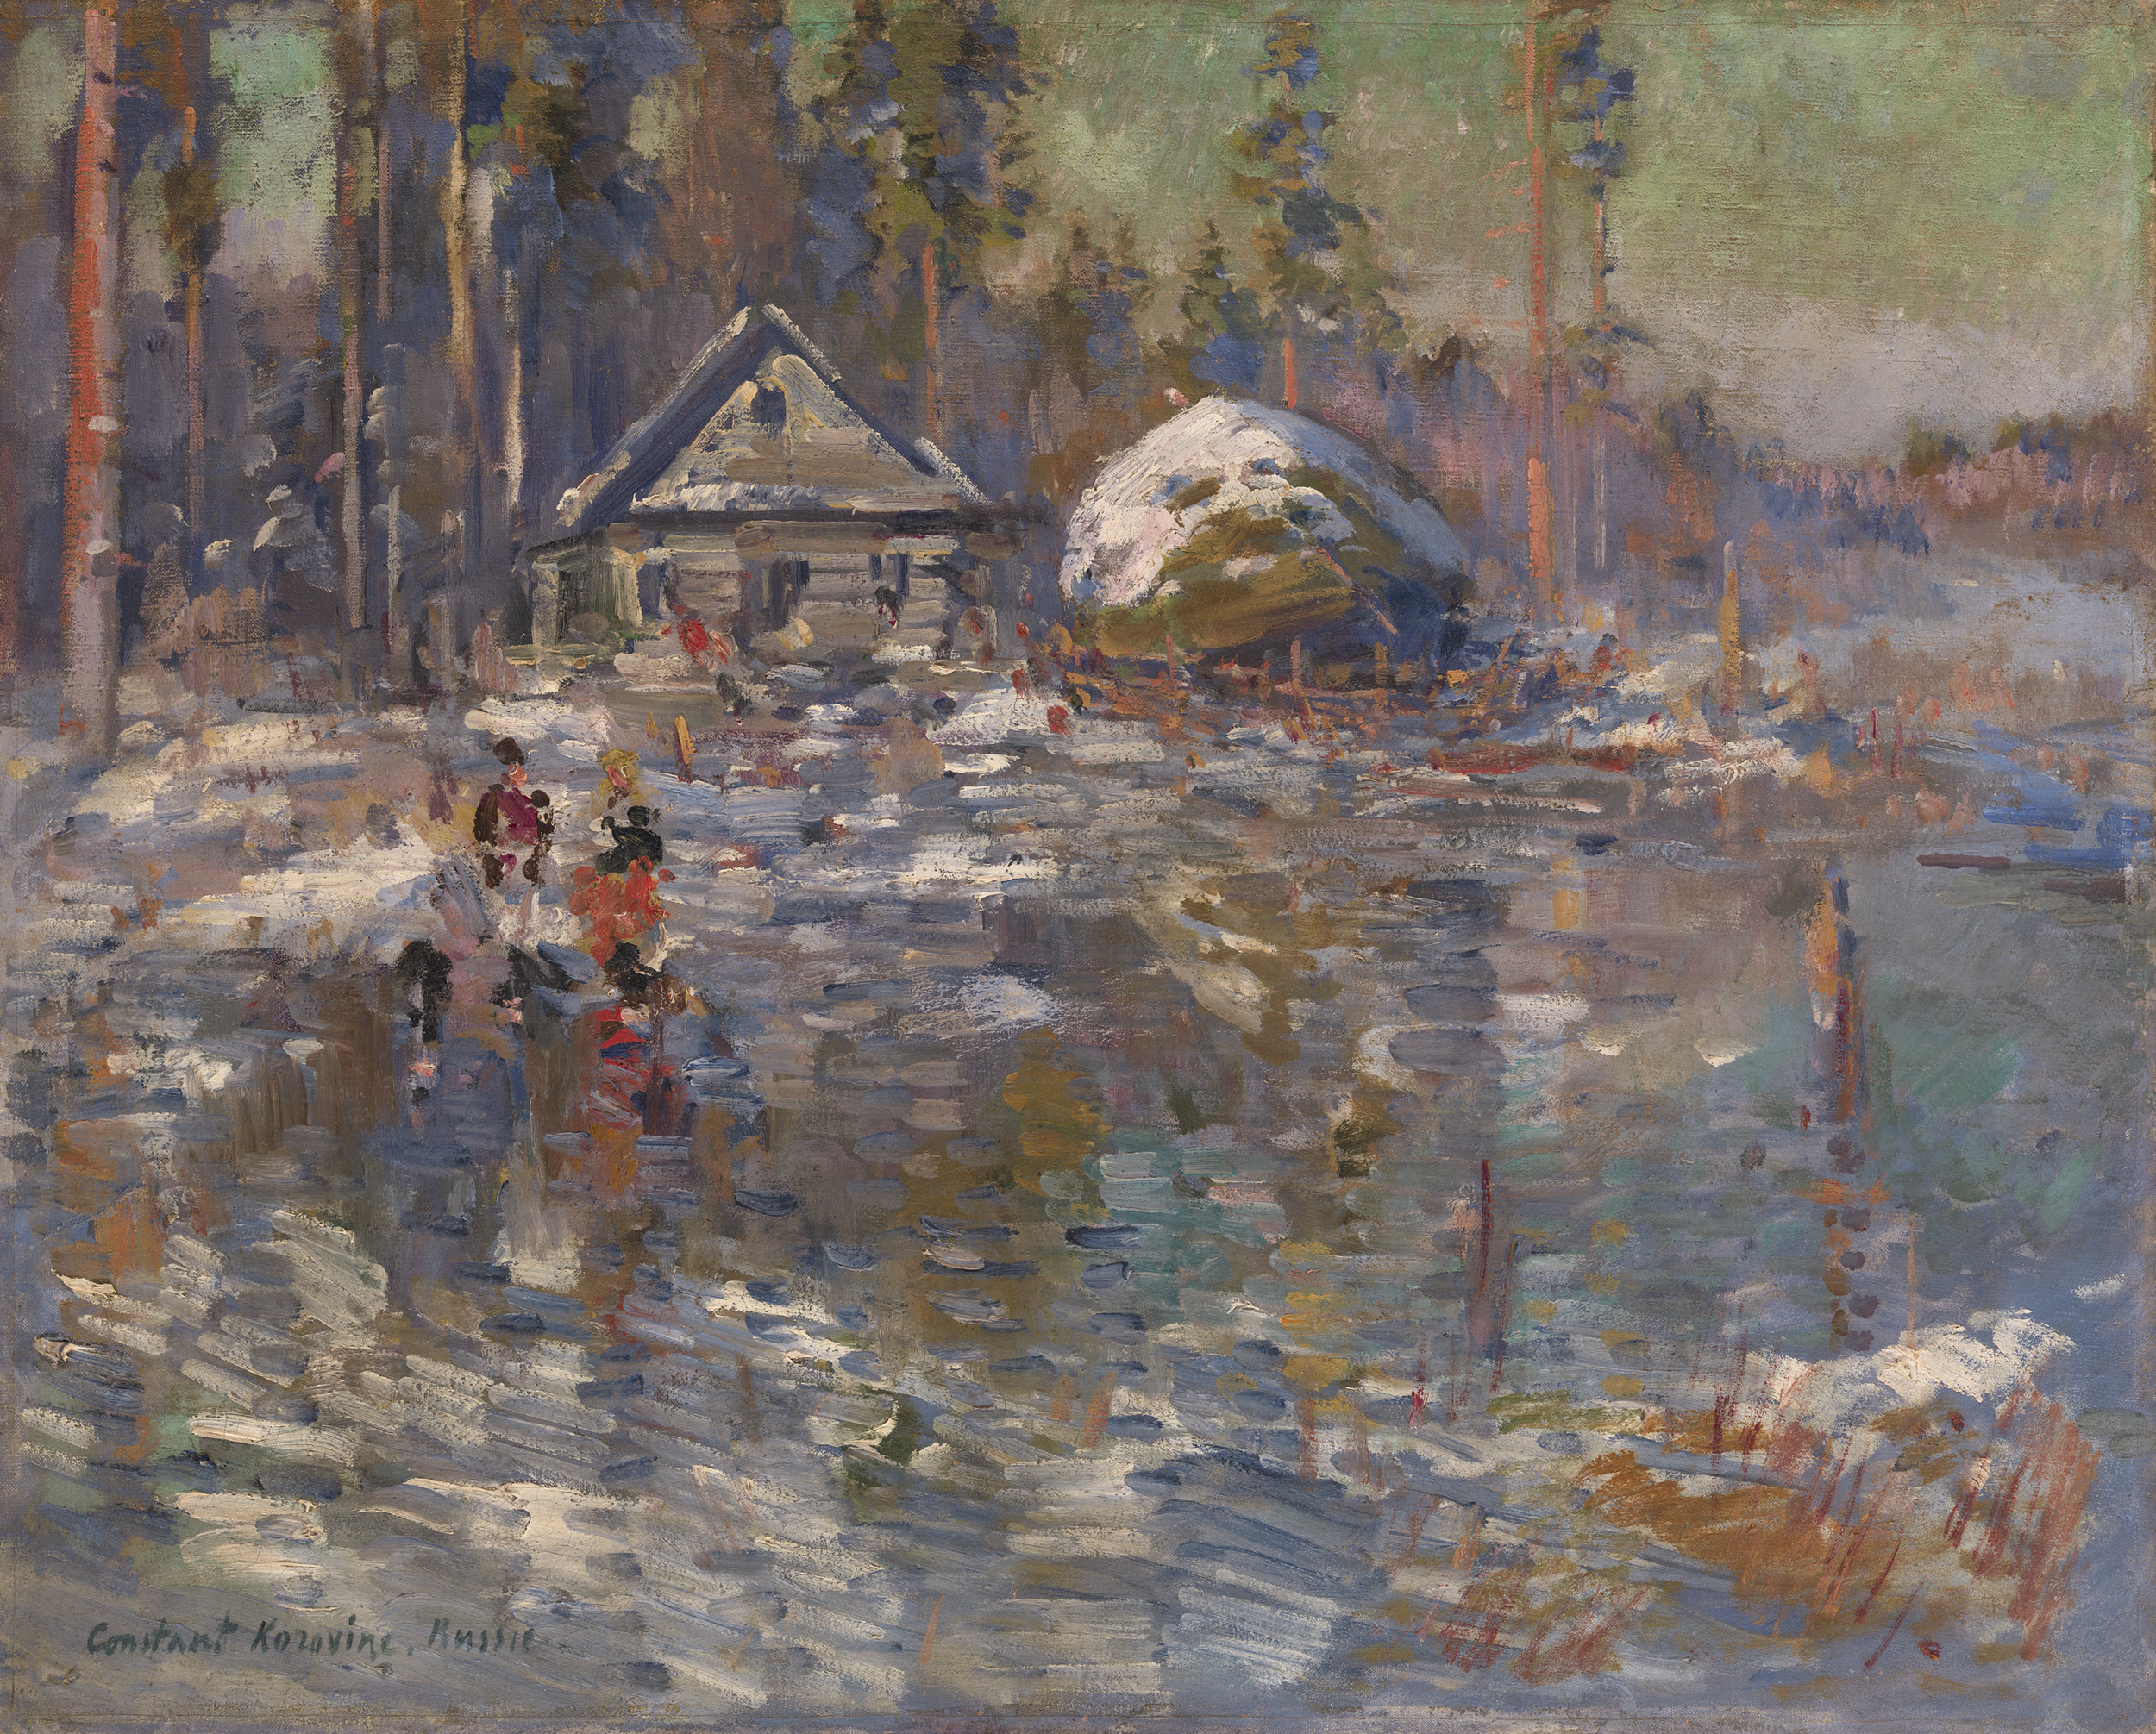 Lot 16 Konstantin Korovin, Frozen Lake